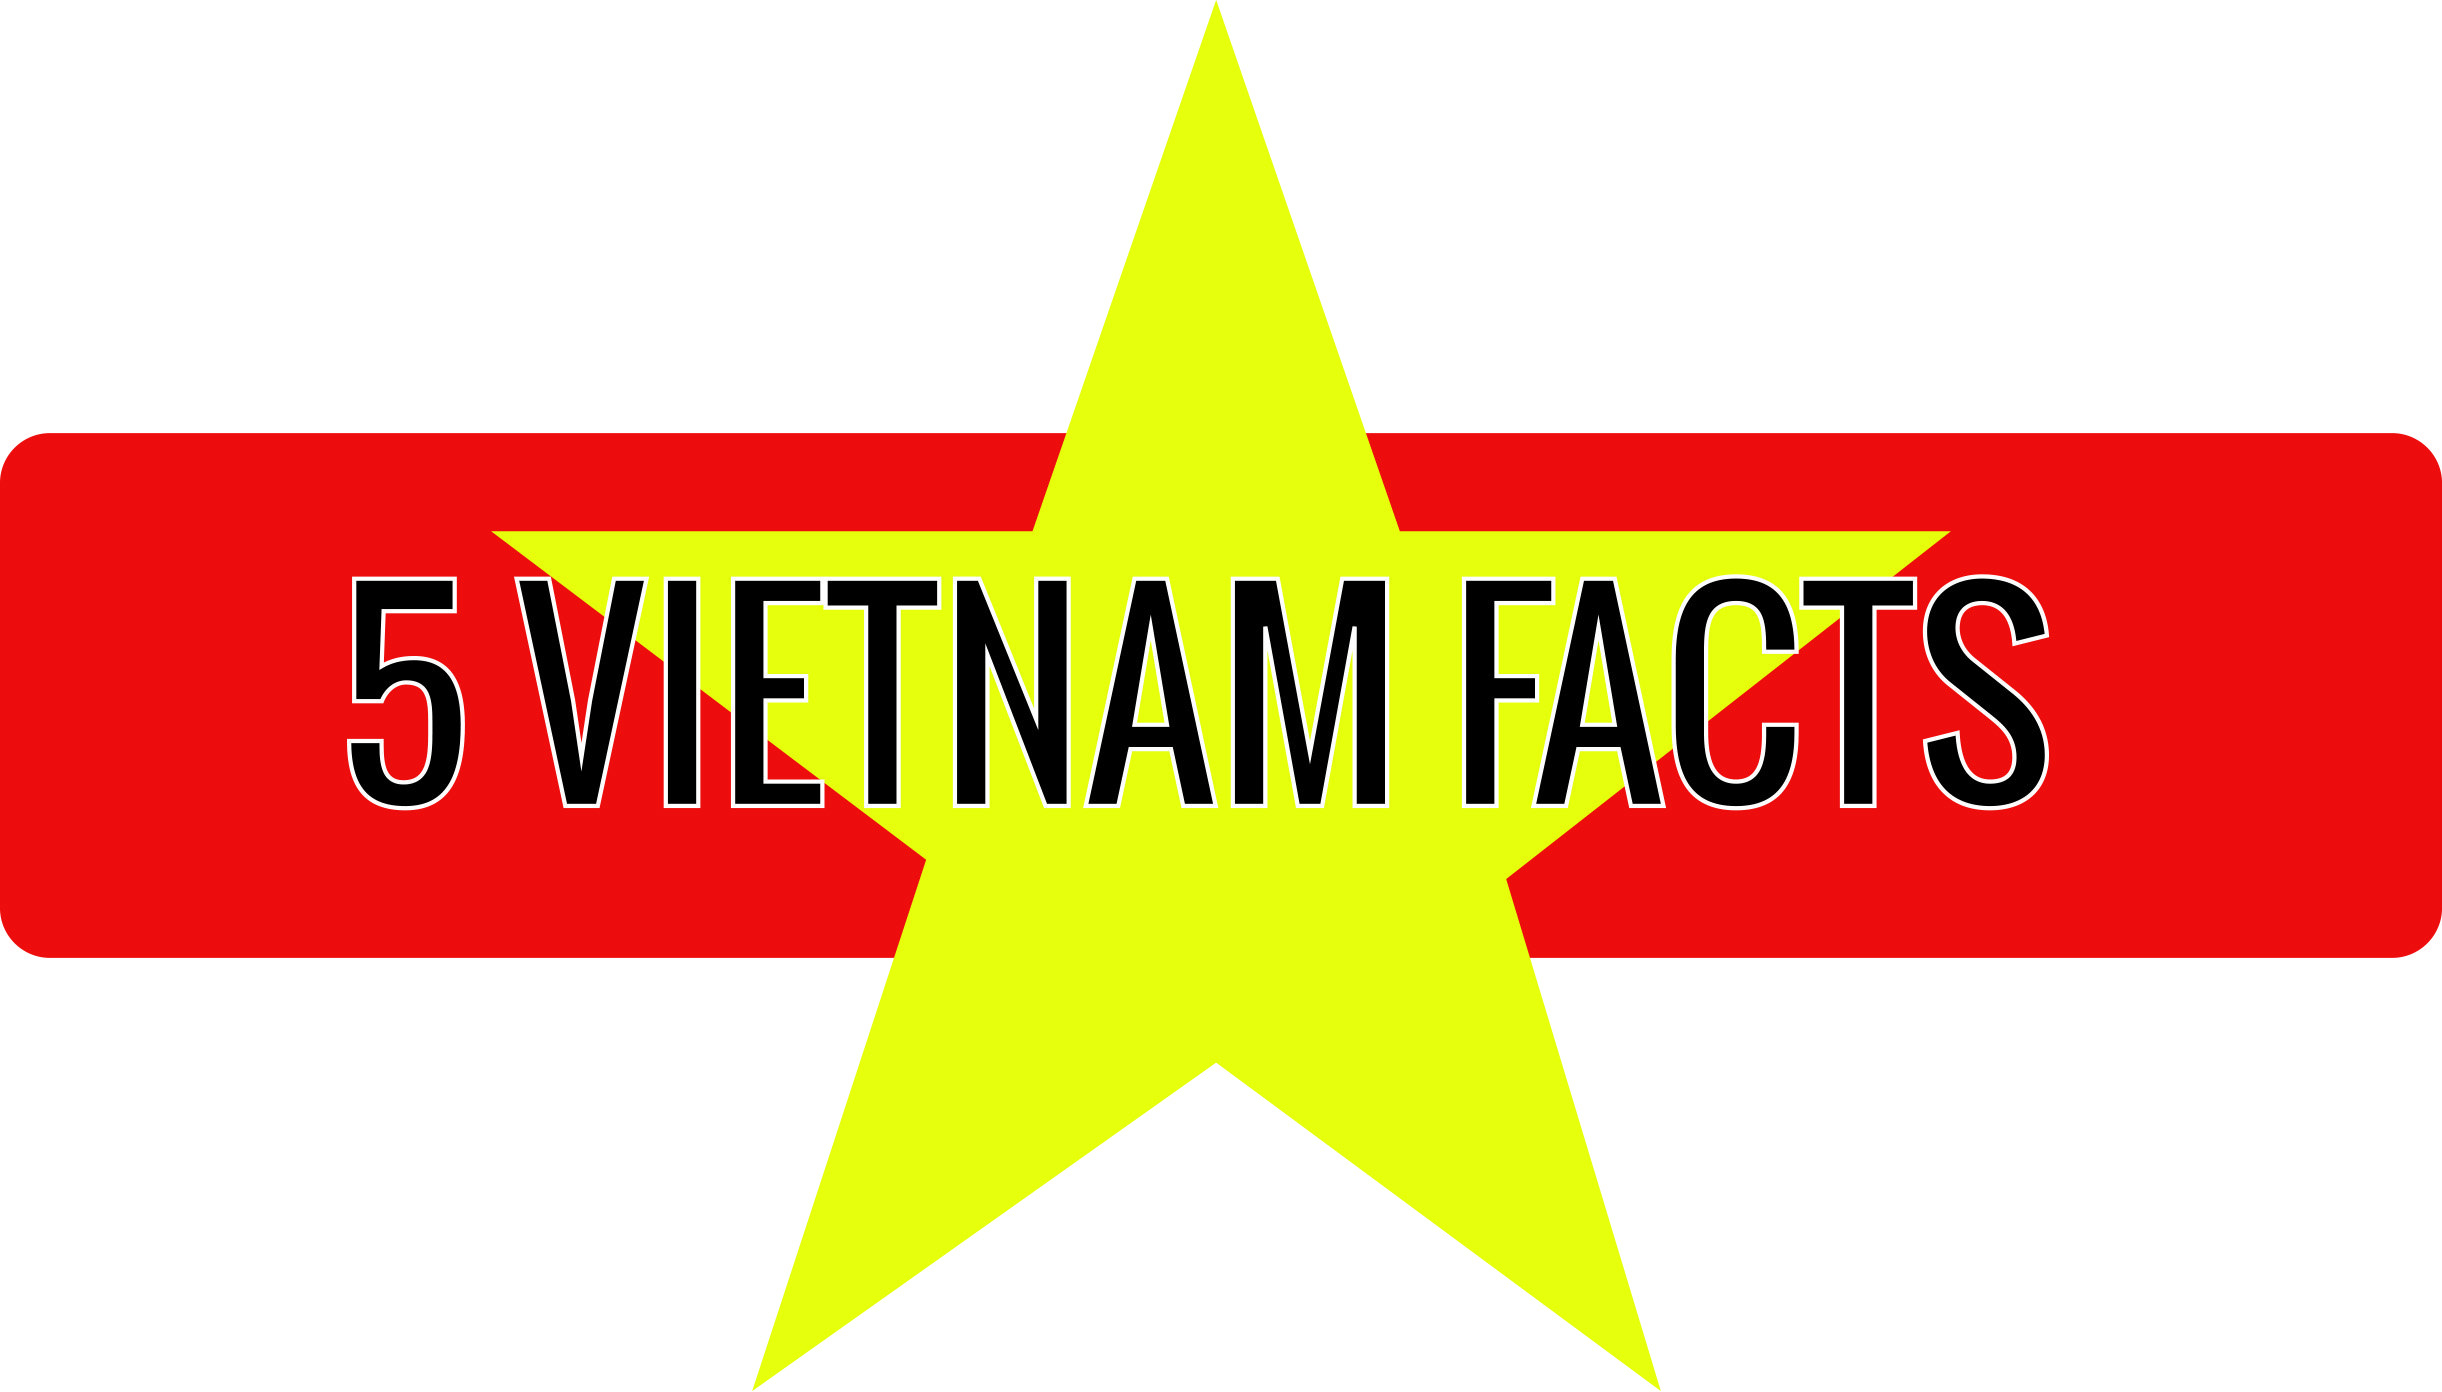 5 Vietnam Facts